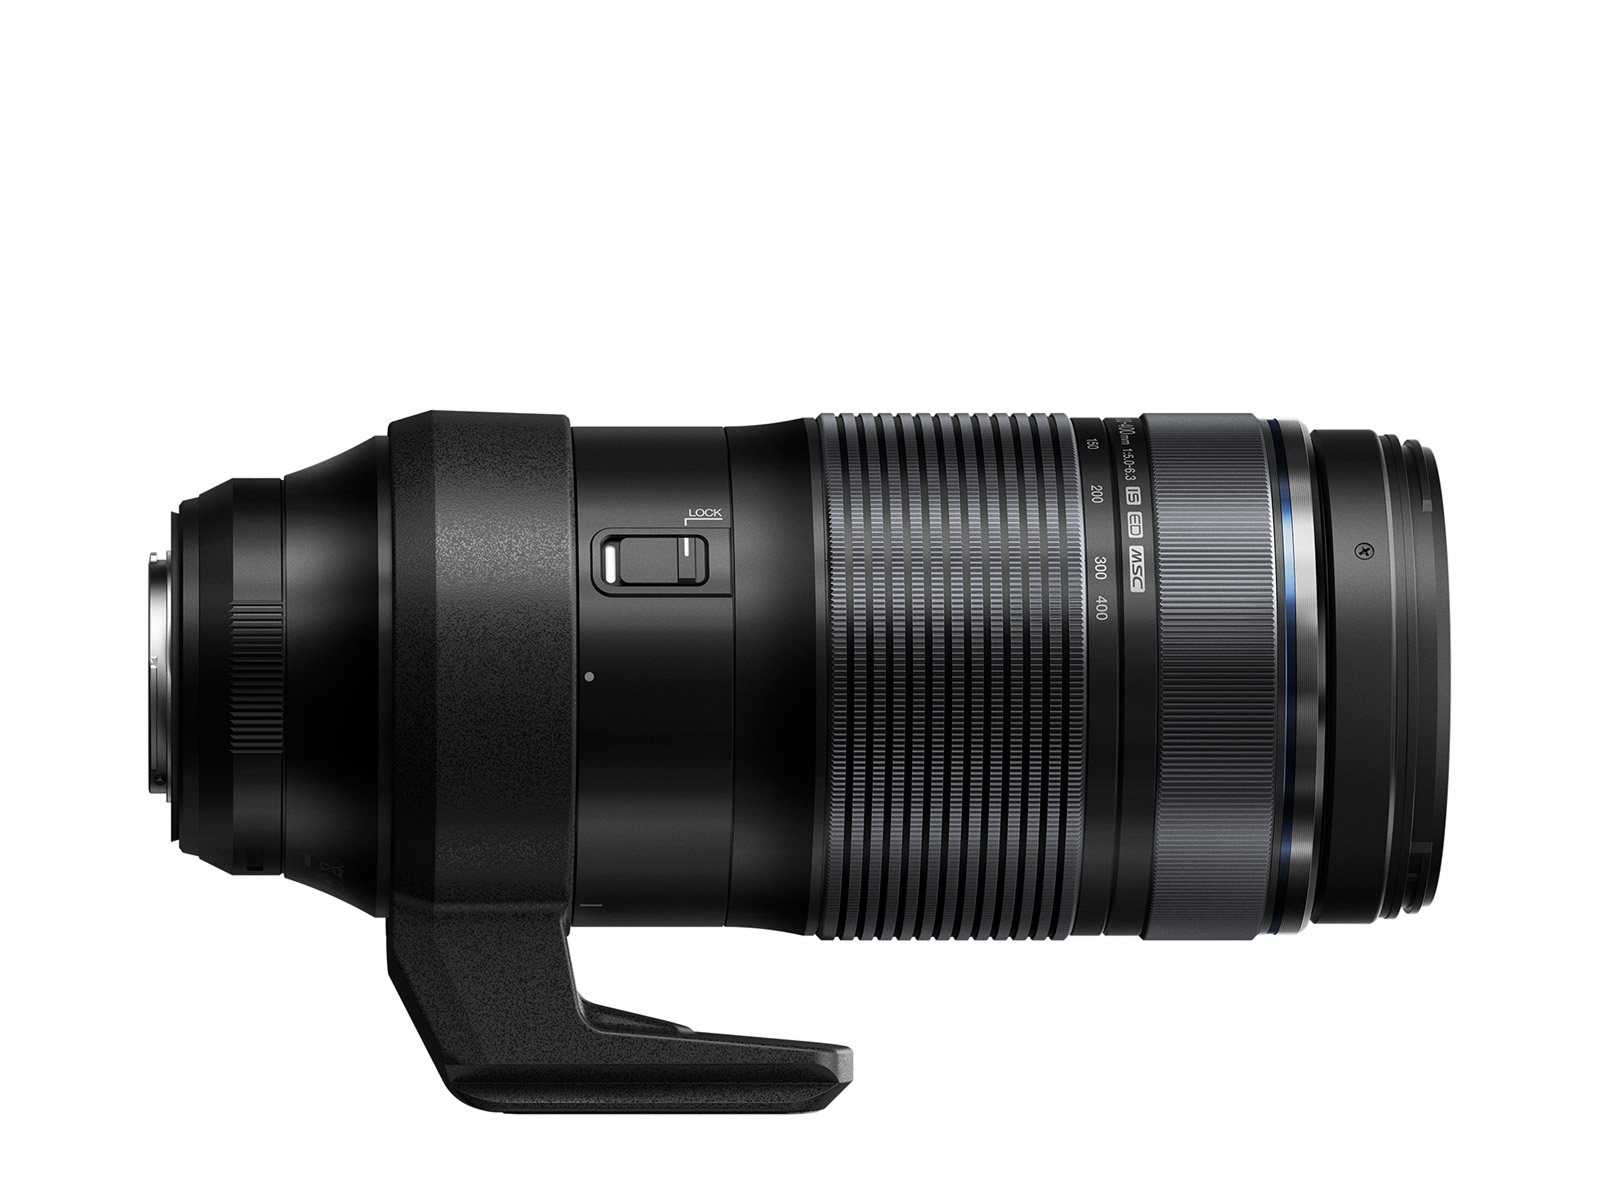 Olympus 100-400mm Lens And OM-D E-M10 Mark IV Review